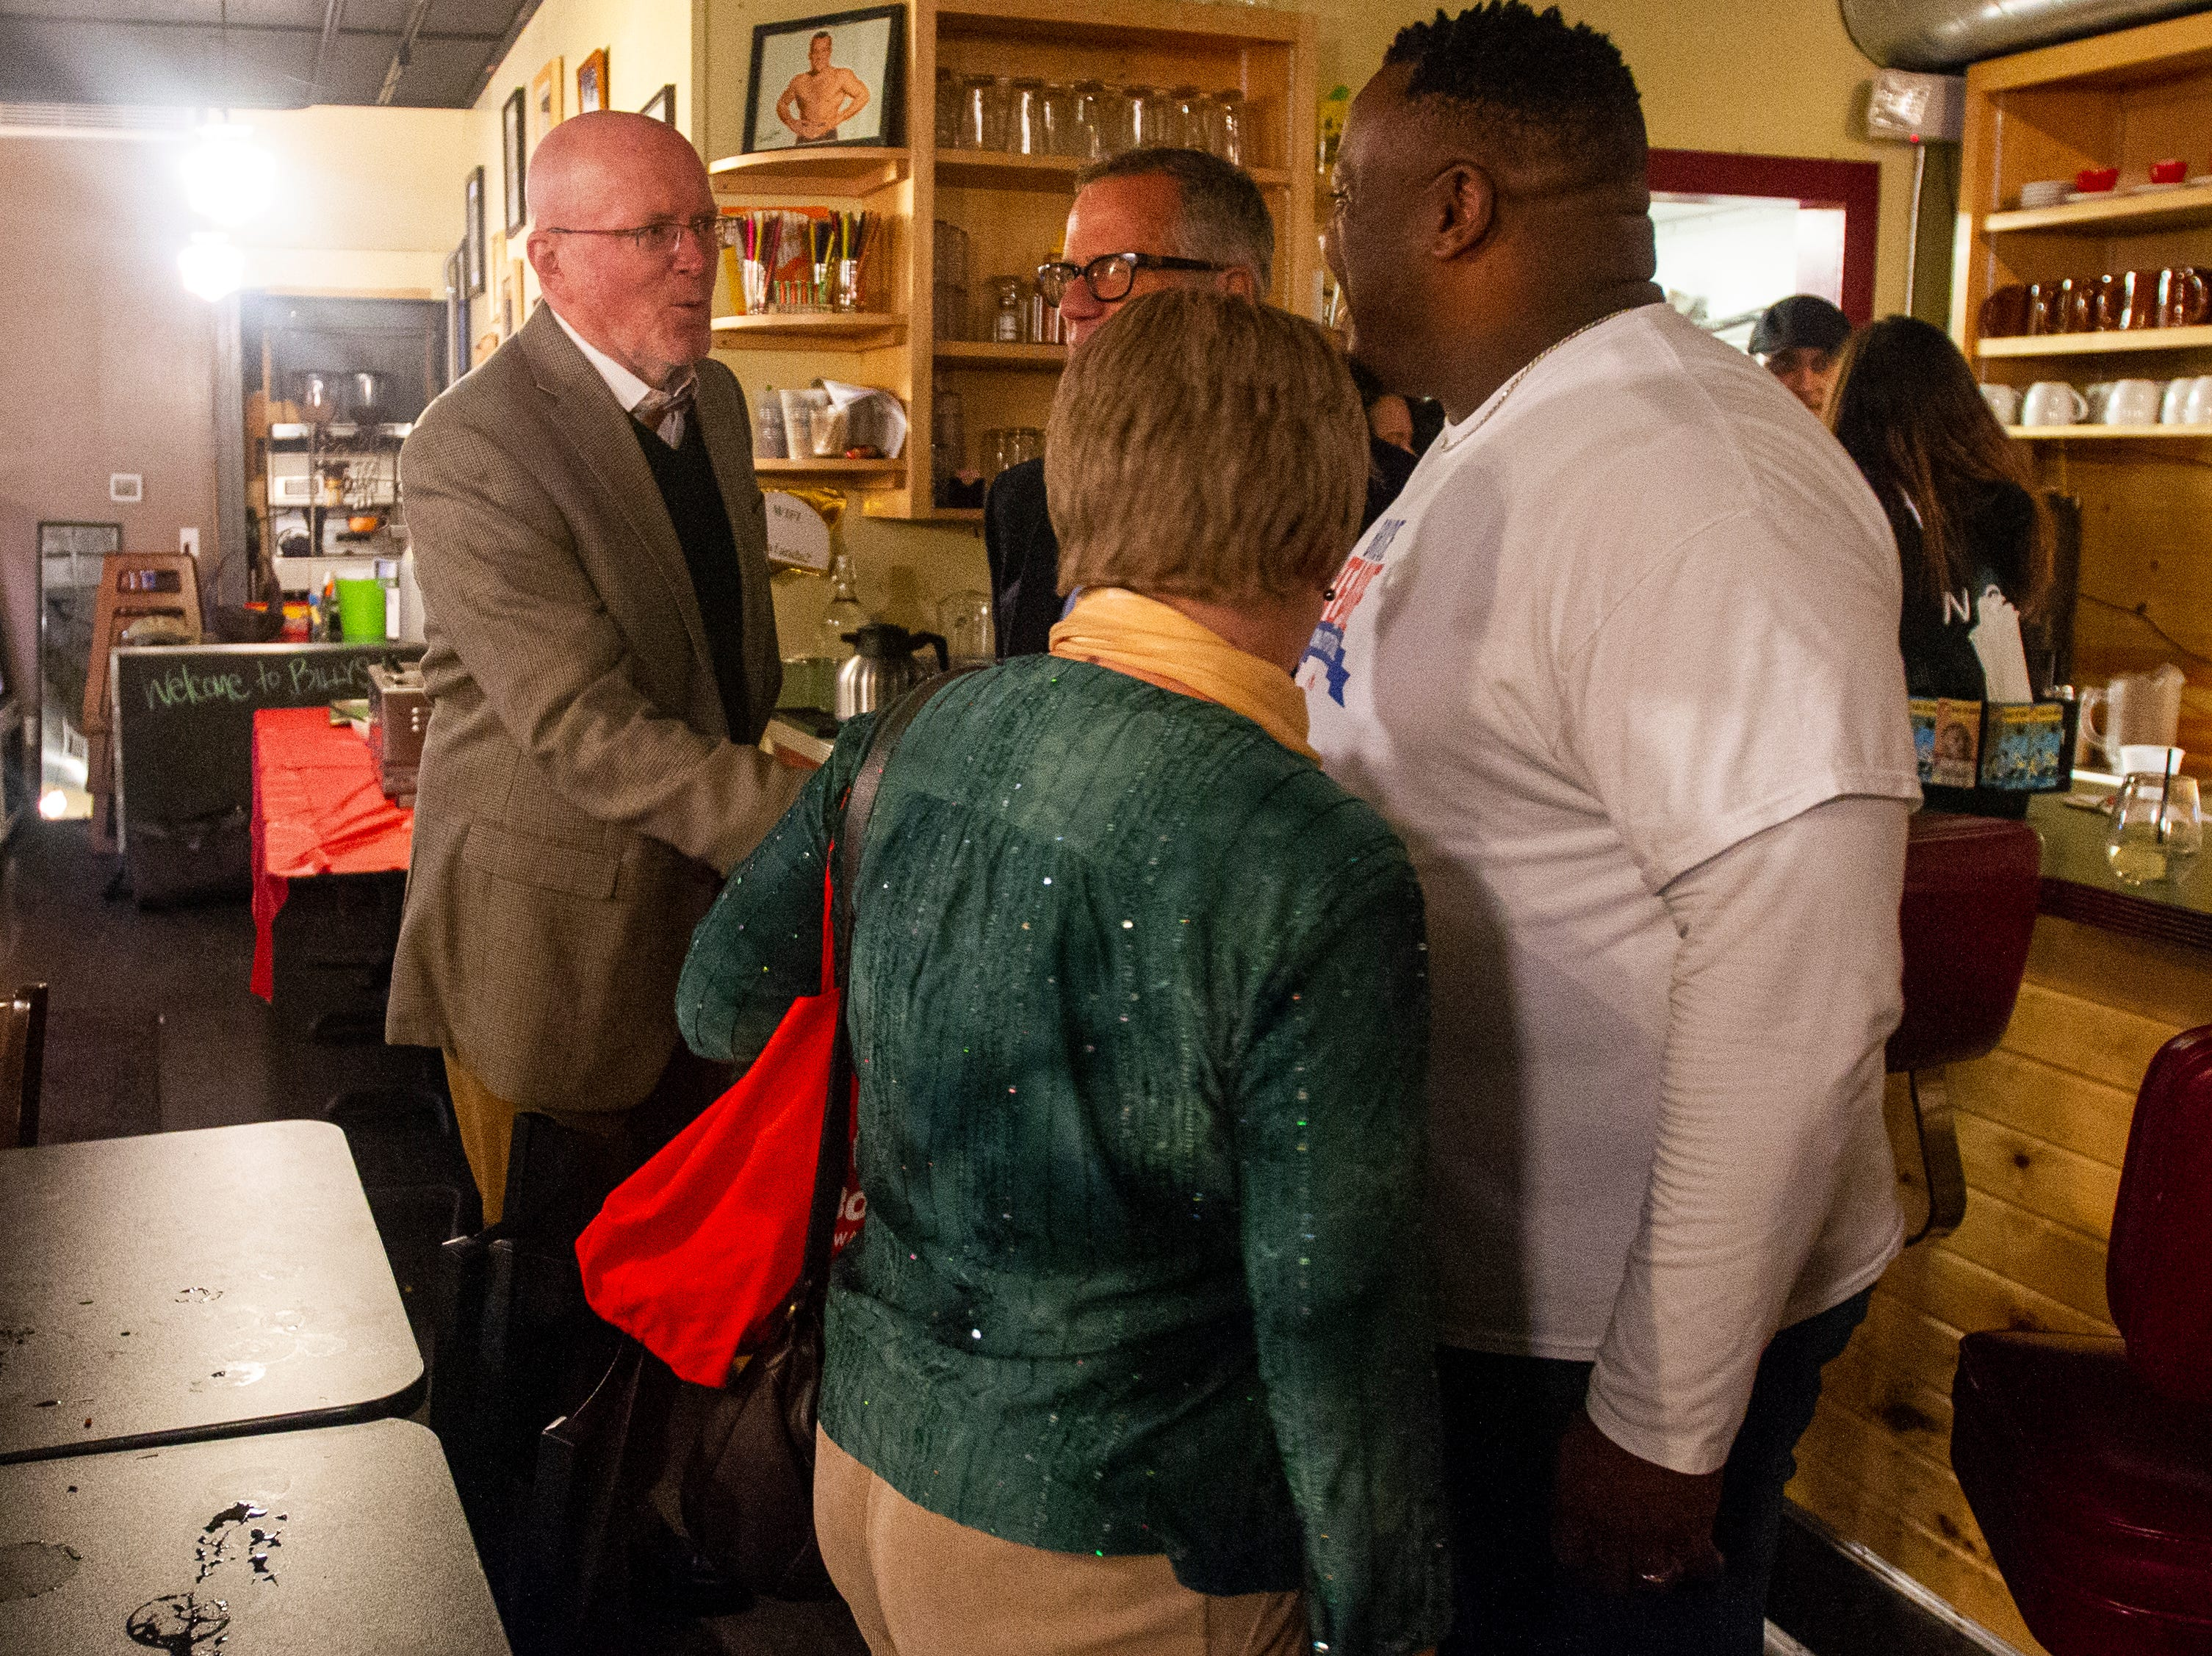 Iowa City Mayor Jim Throgmorton shakes hands with Bruce Teague on Tuesday, Oct. 2, 2018, at Billy's High Hat Diner on Iowa Avenue in Iowa City.